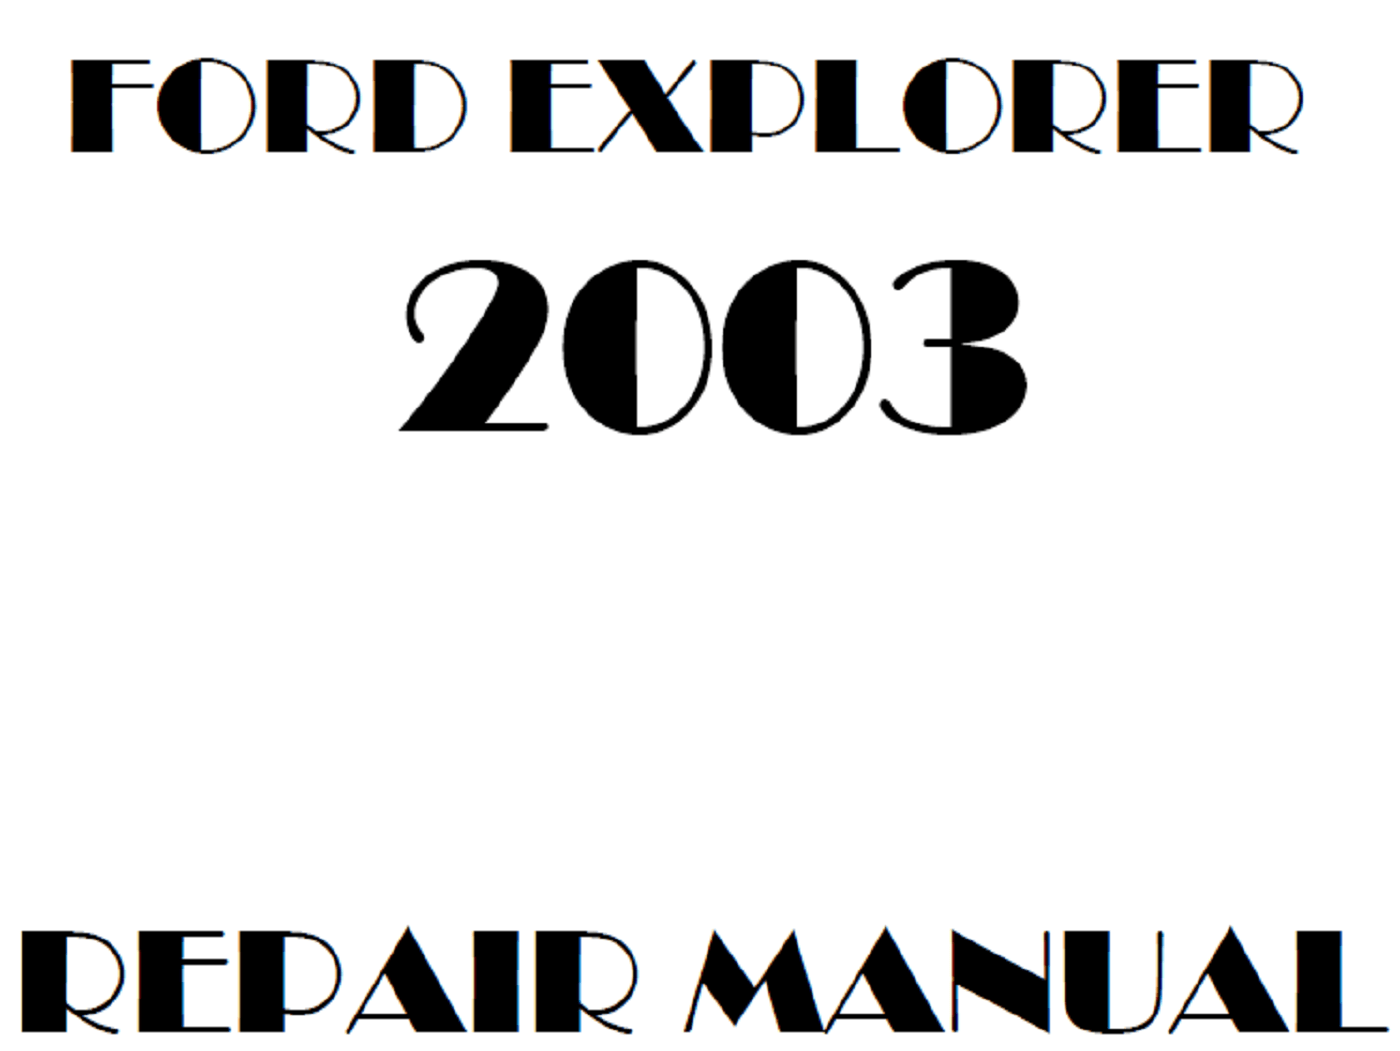 2003 Ford Explorer repair manual